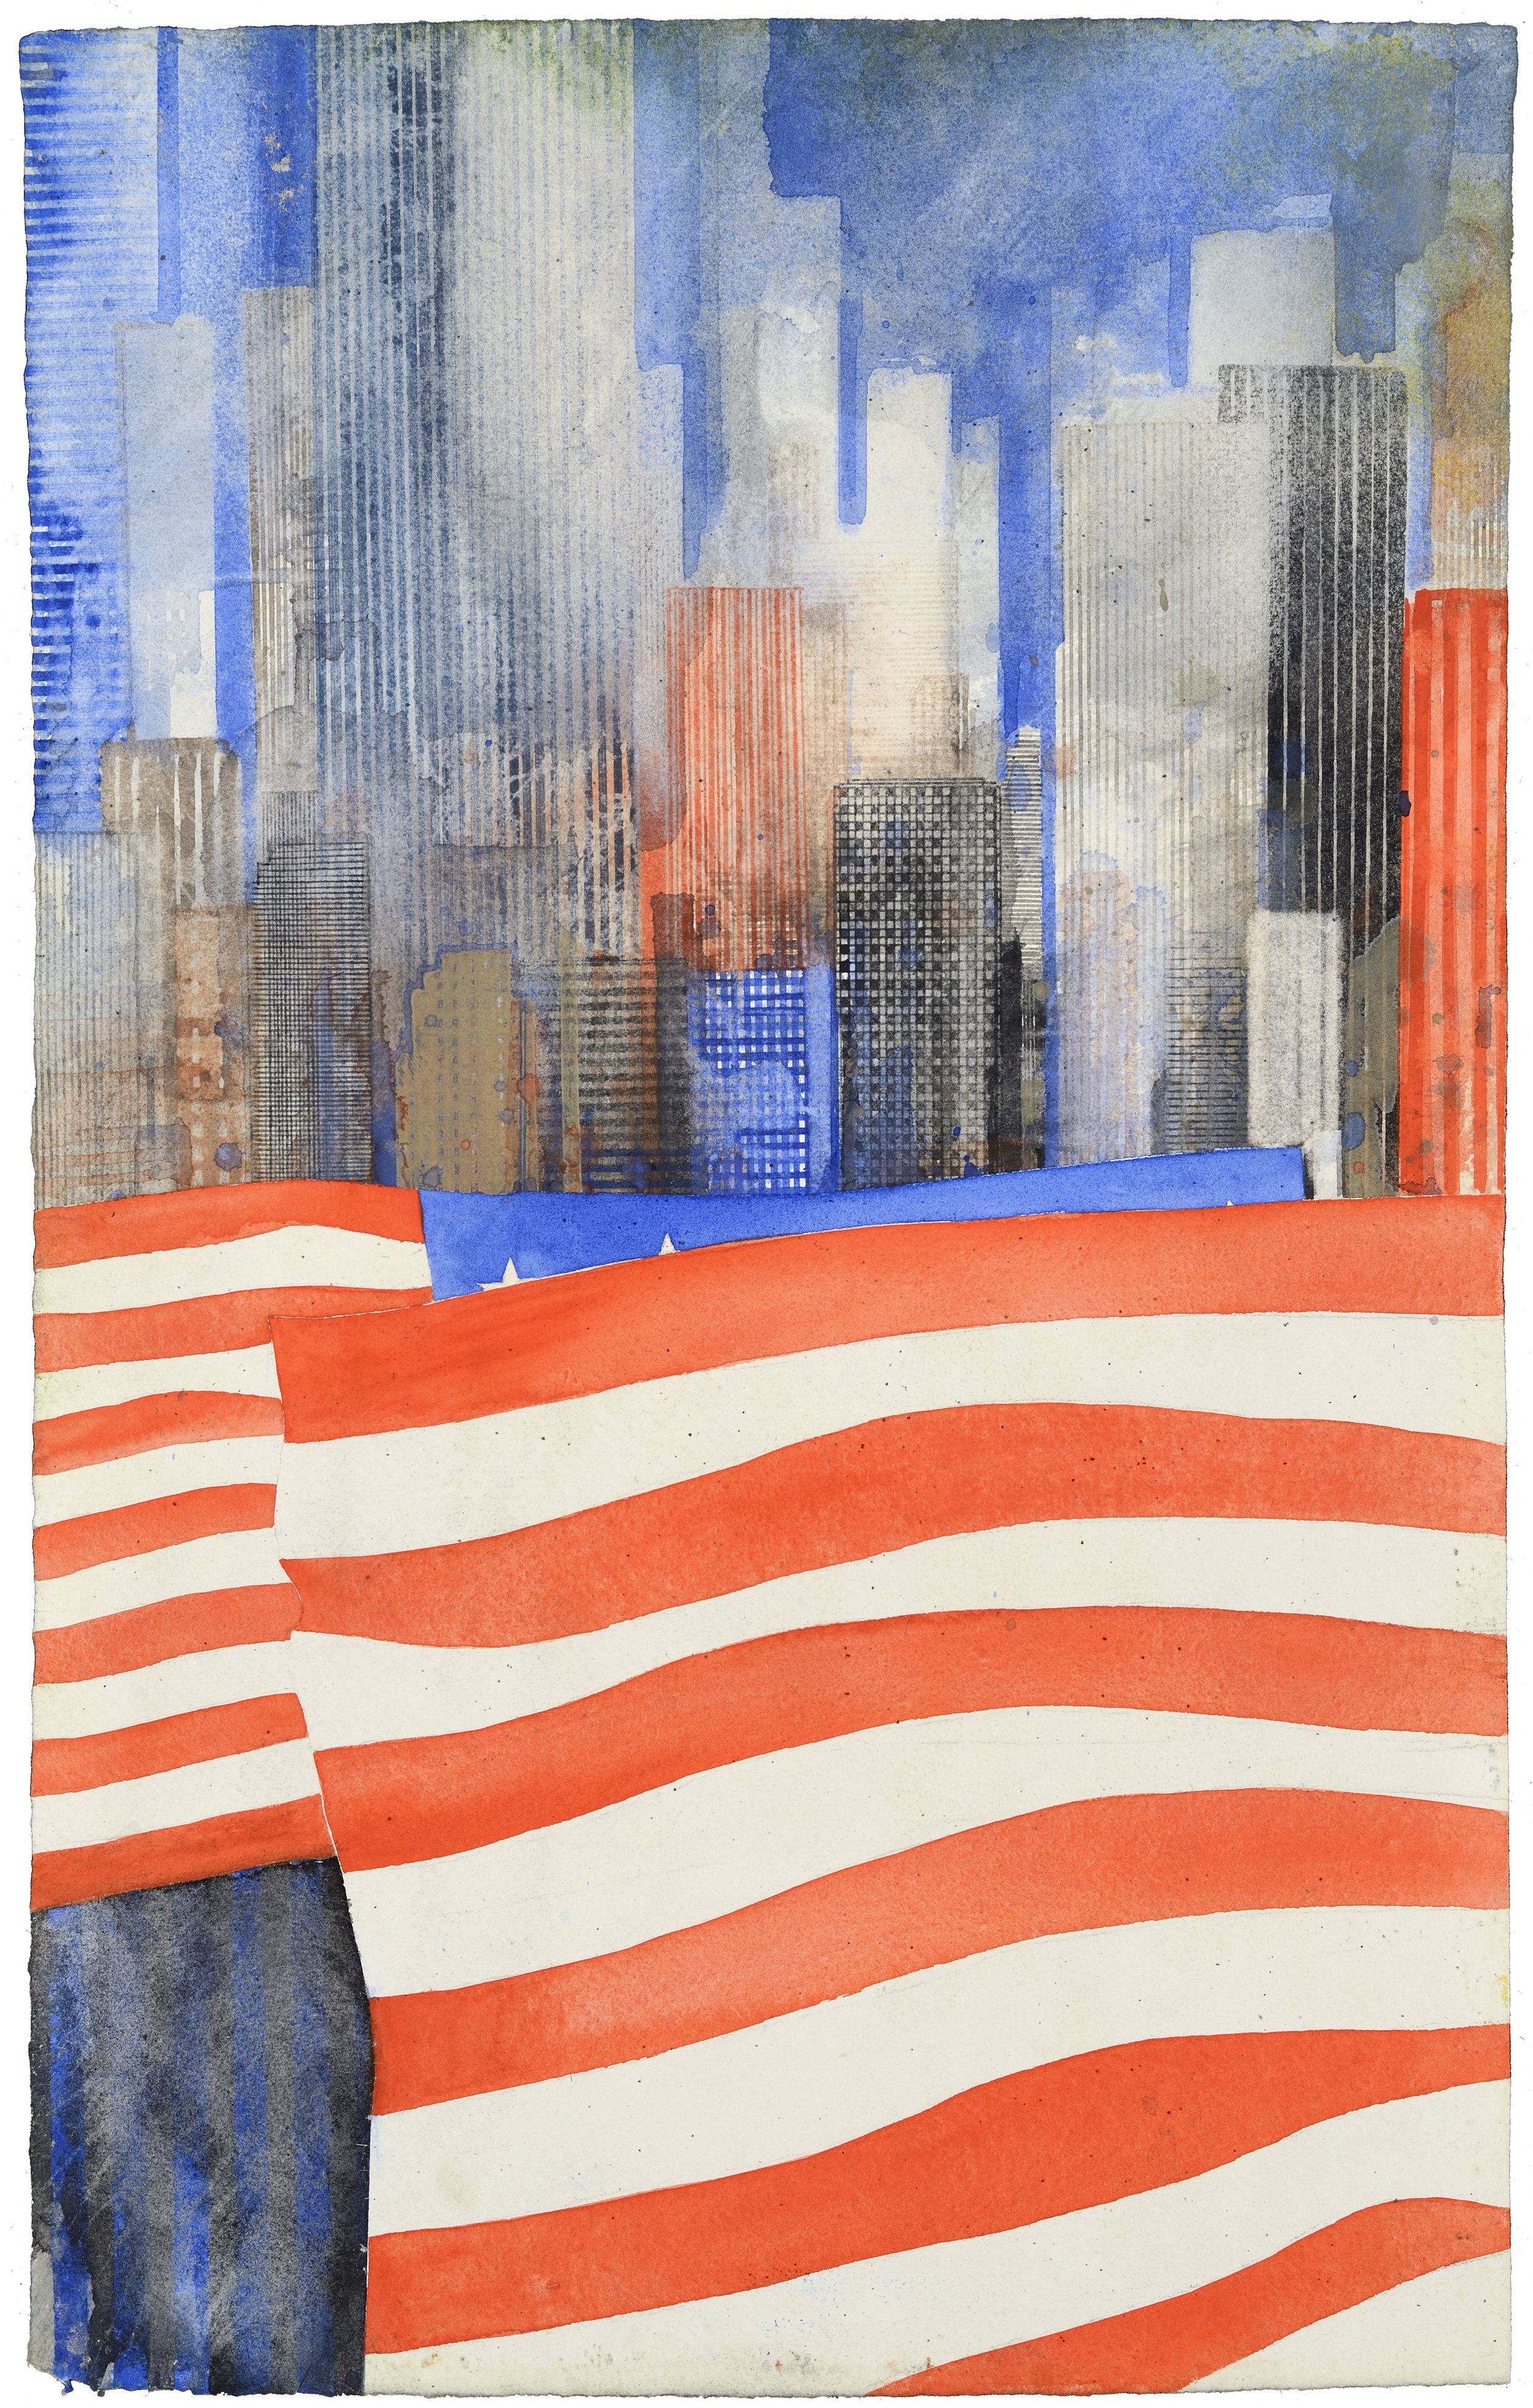 US Flag VII, watercolor, 48 x 30 cm, 19 x 12 in, 2015